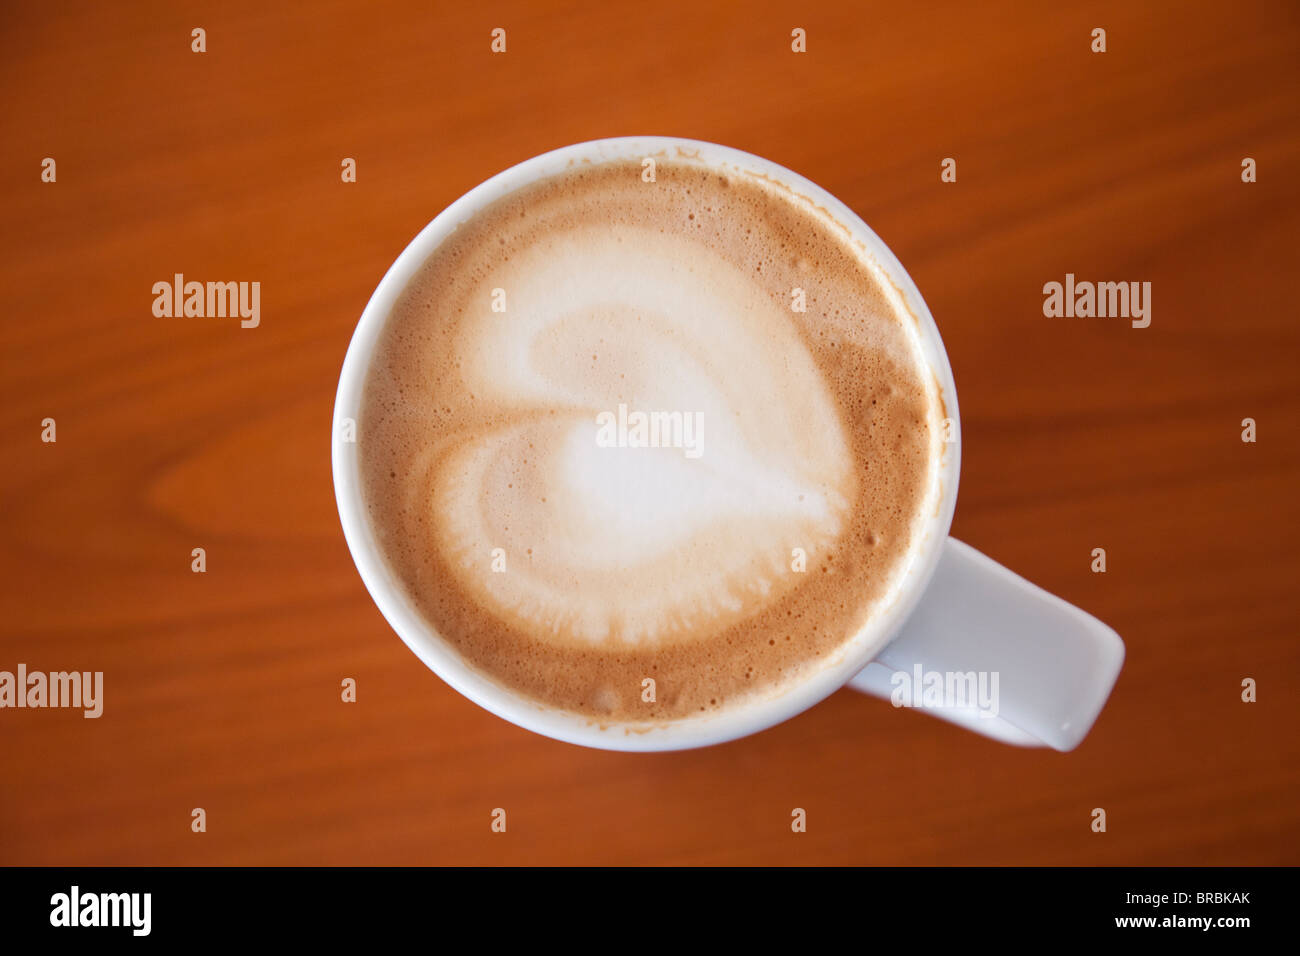 Top down of a mug of cafe Latte coffee with a heart shape in froth on top of a wooden table background from above. - Stock Image